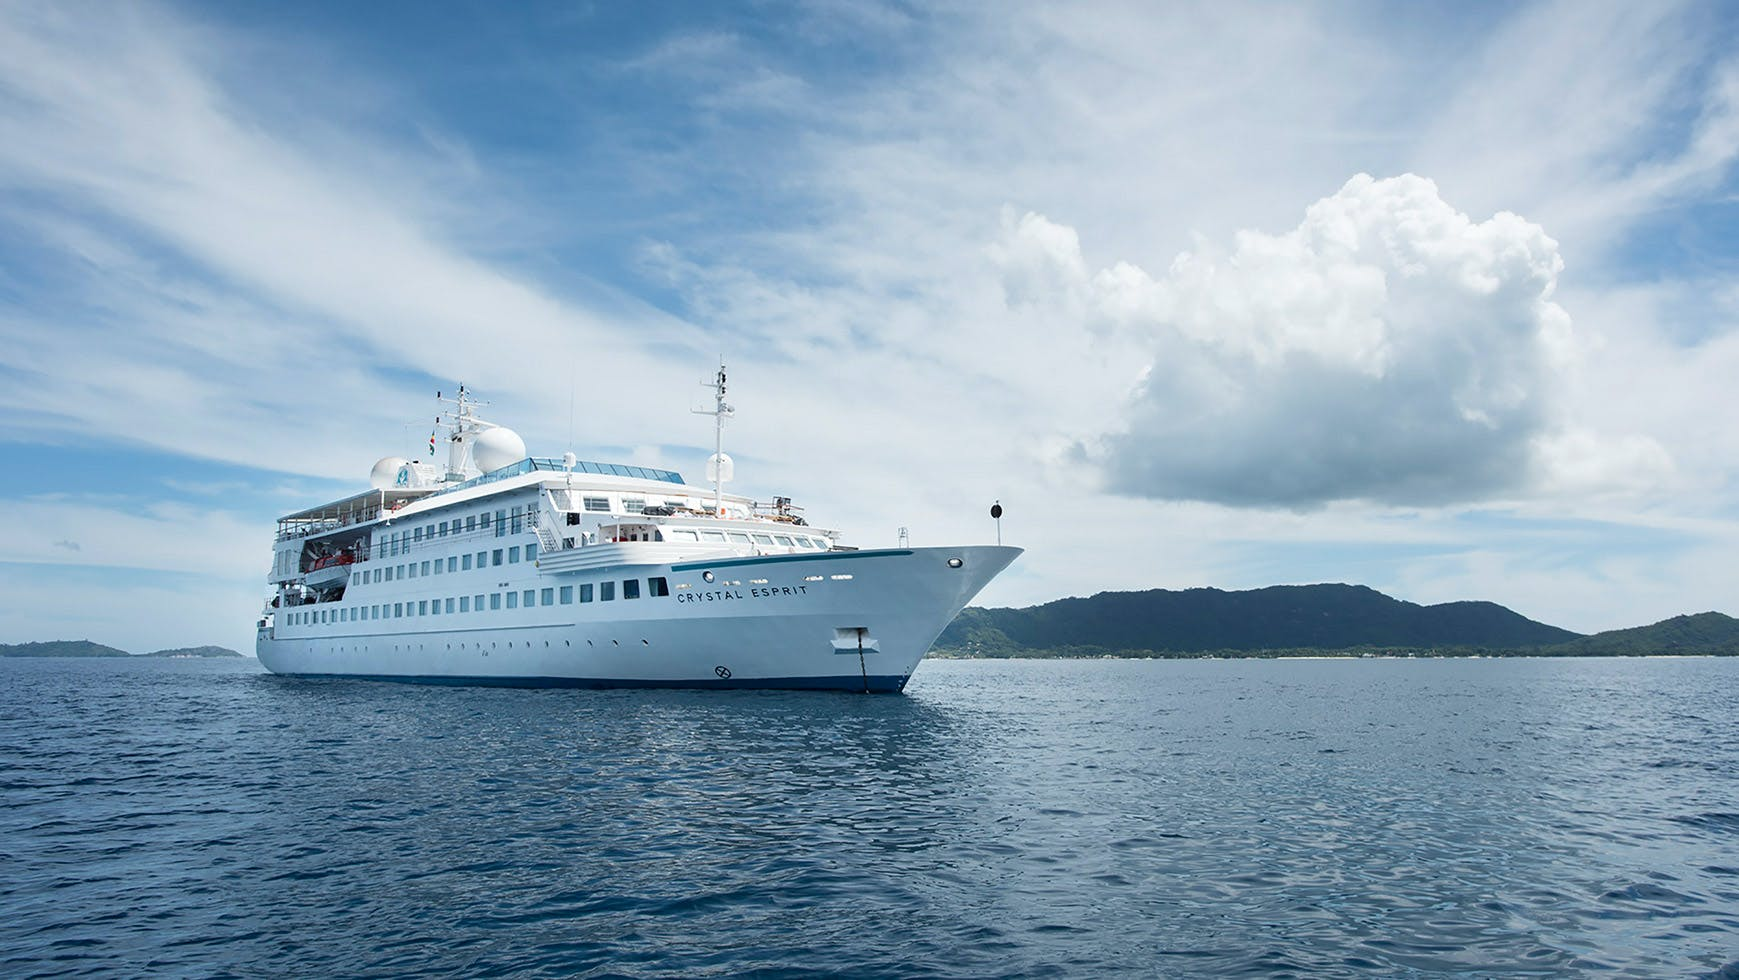 Save up to $1,000 on Crystal's Yacht Expedition Cruises